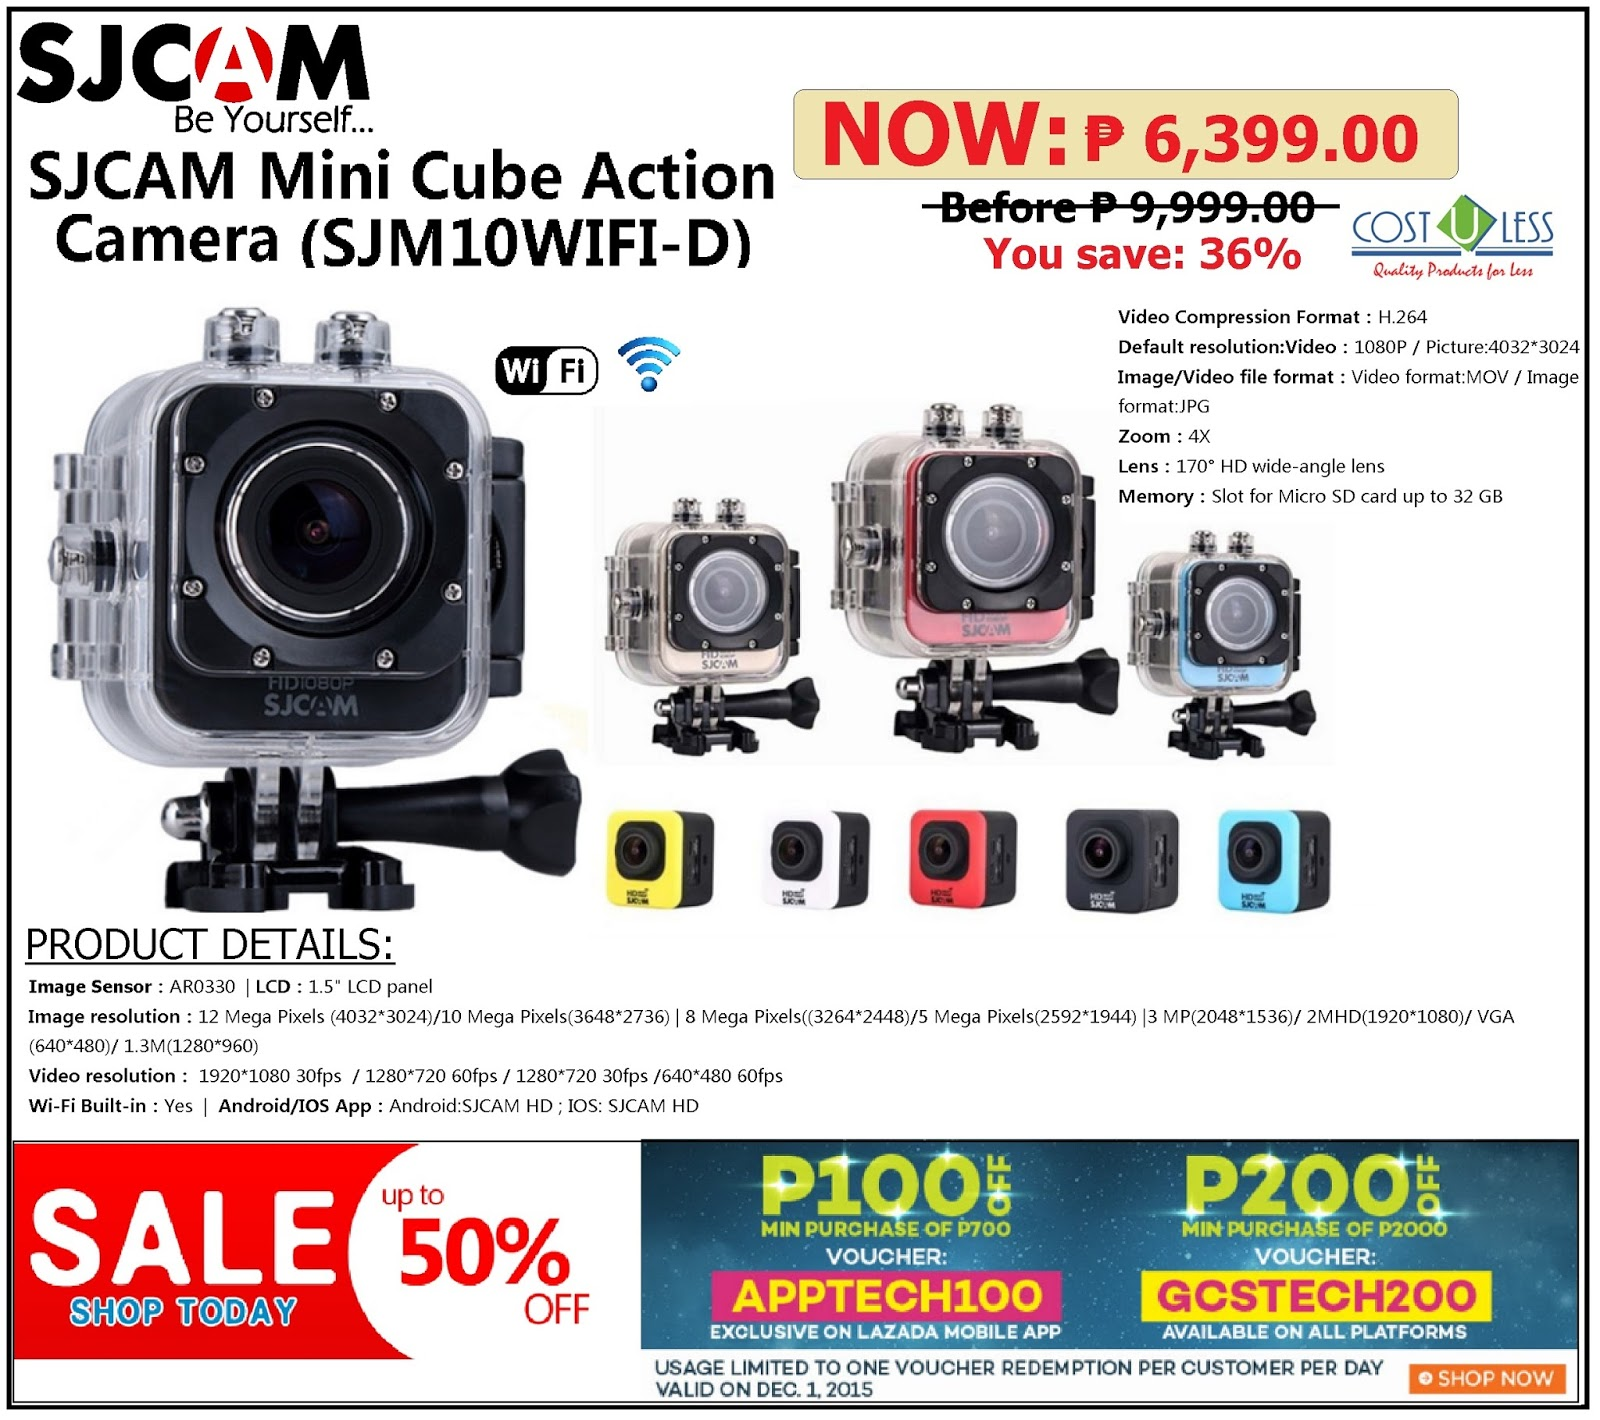 Save 100 Up To 200 Off On Sjcam Sjm10wifi D Mini Cube Camera At Lazada S Grand Christmas